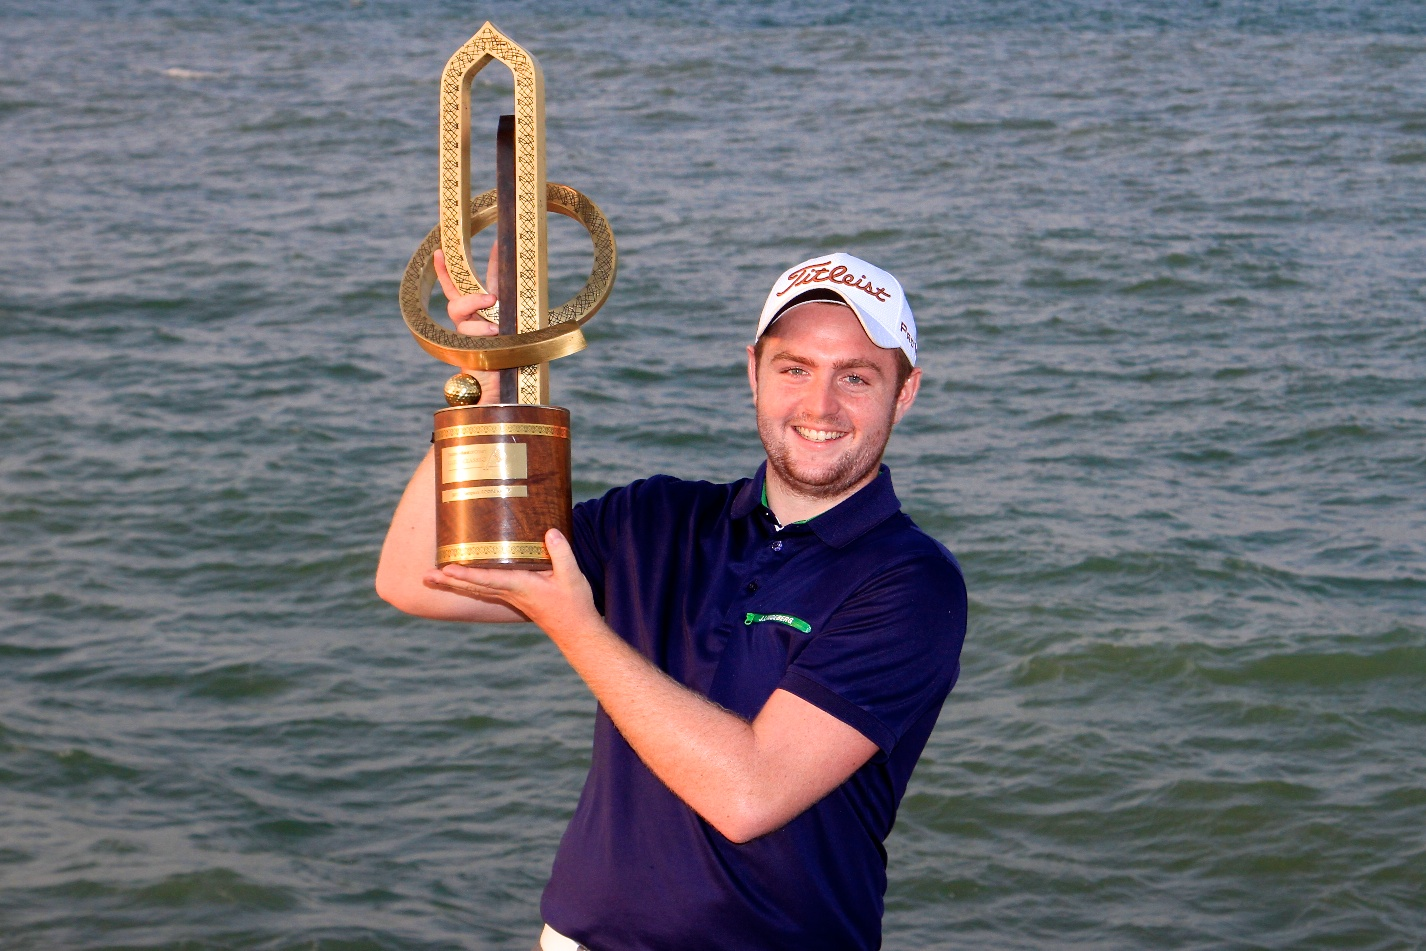 Orrin targets European Tour status after Oman triumph